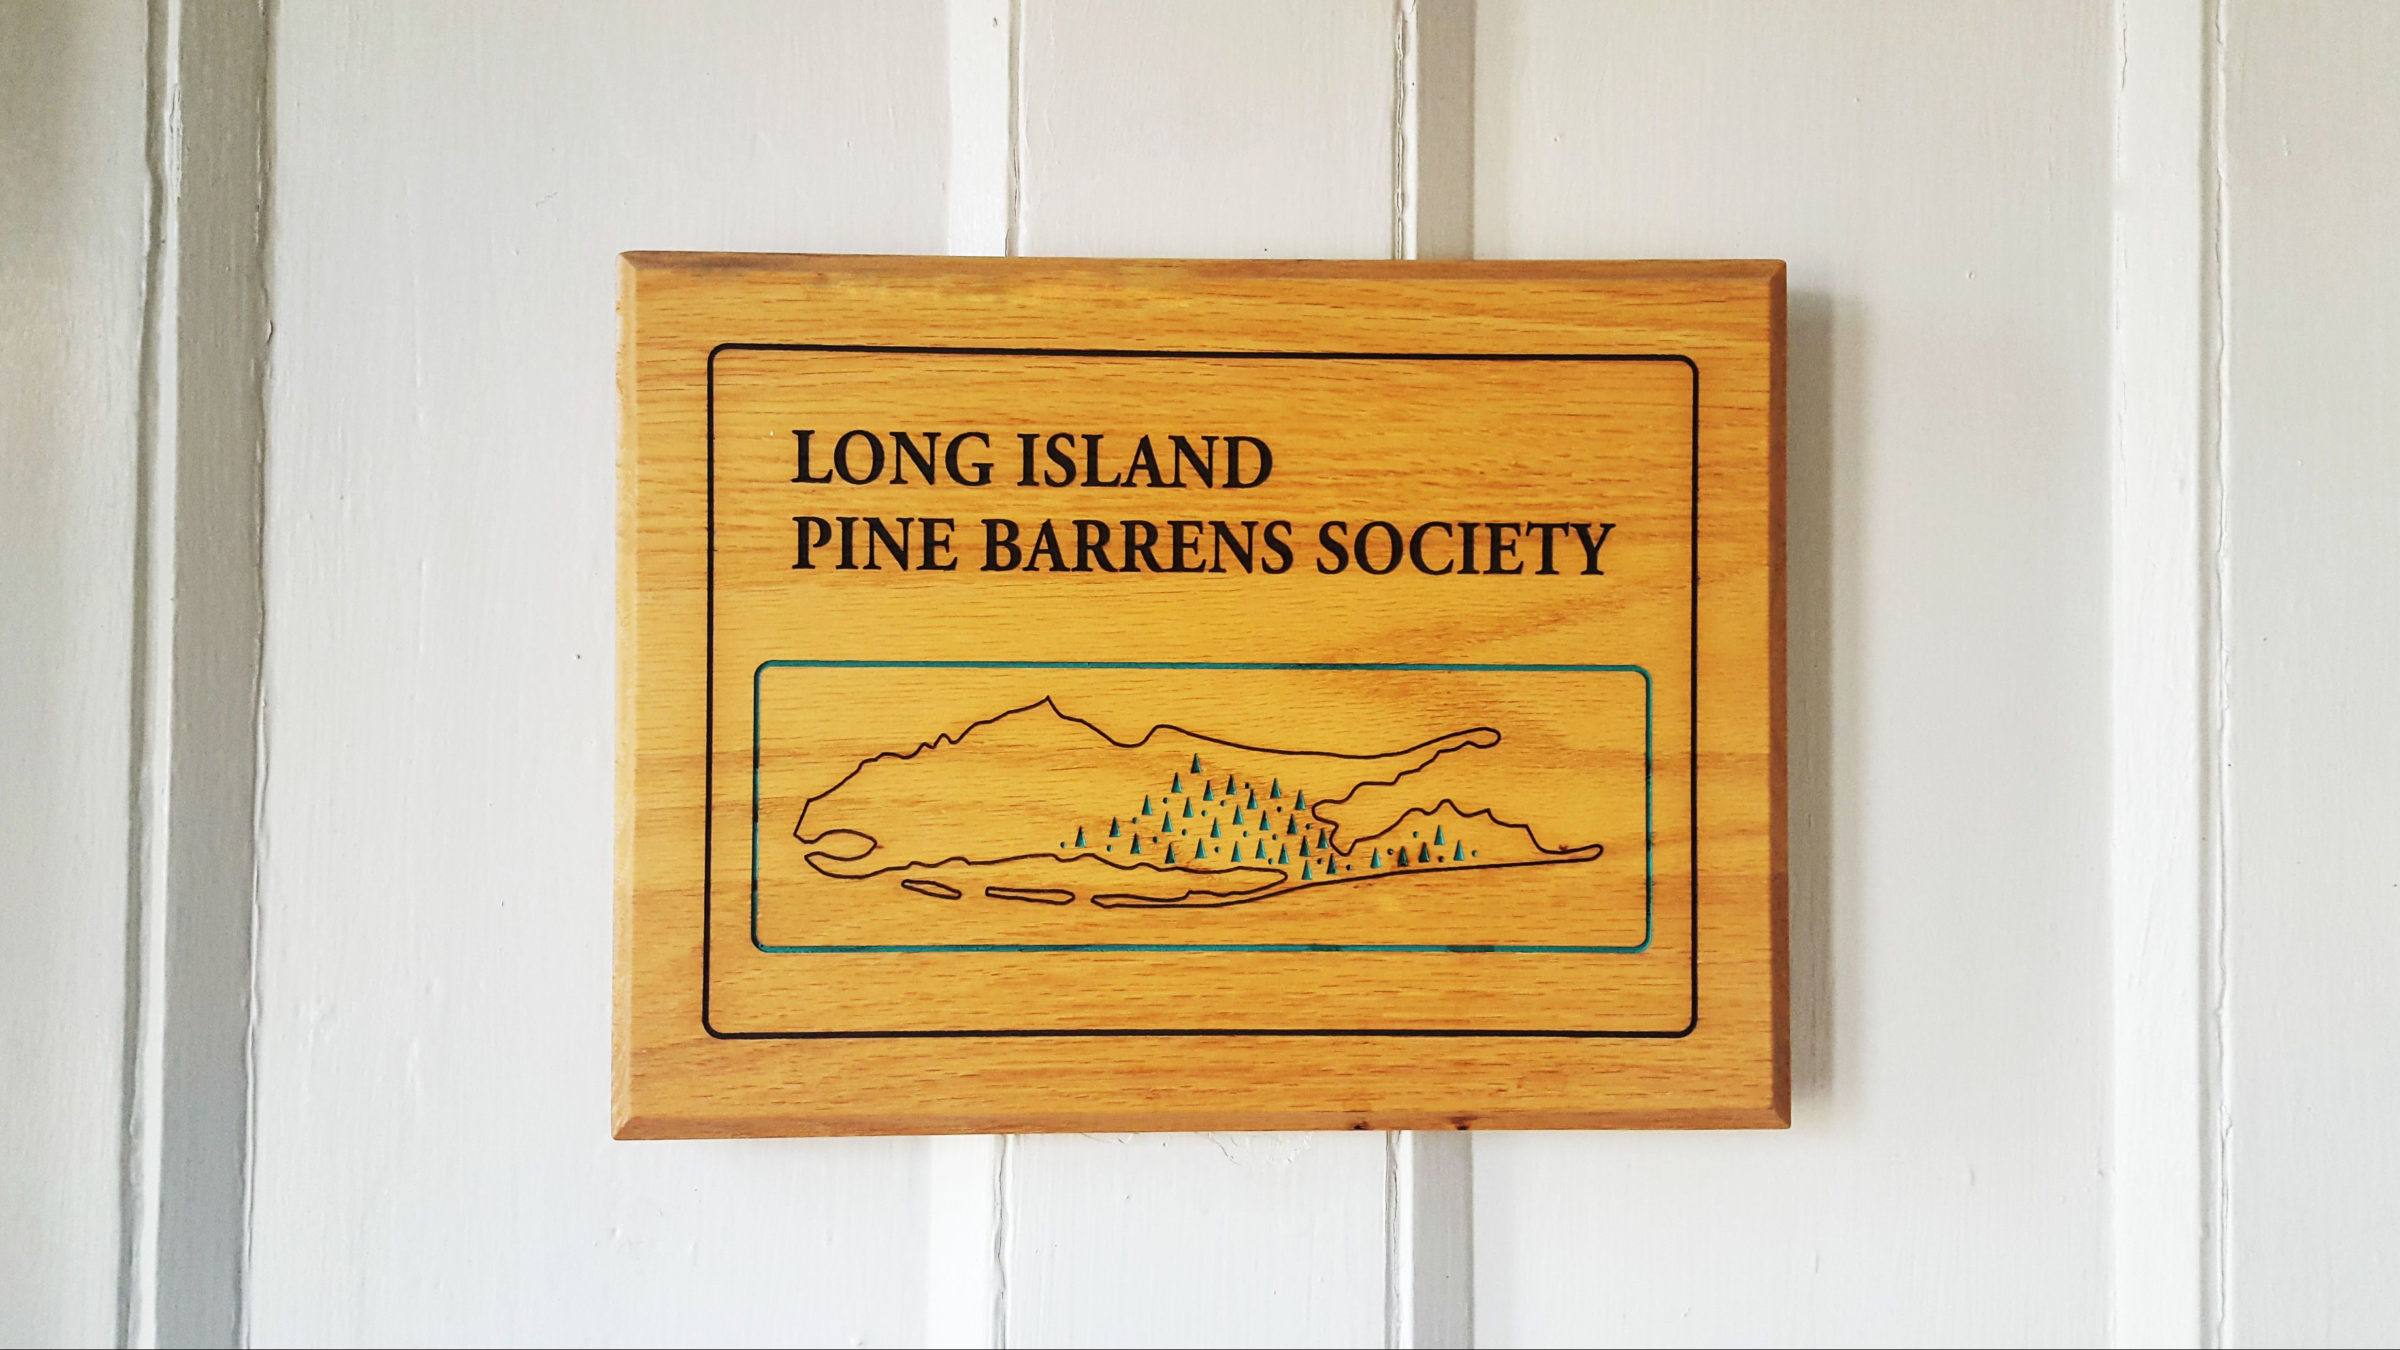 Front door sign of the Pine Barrens Society